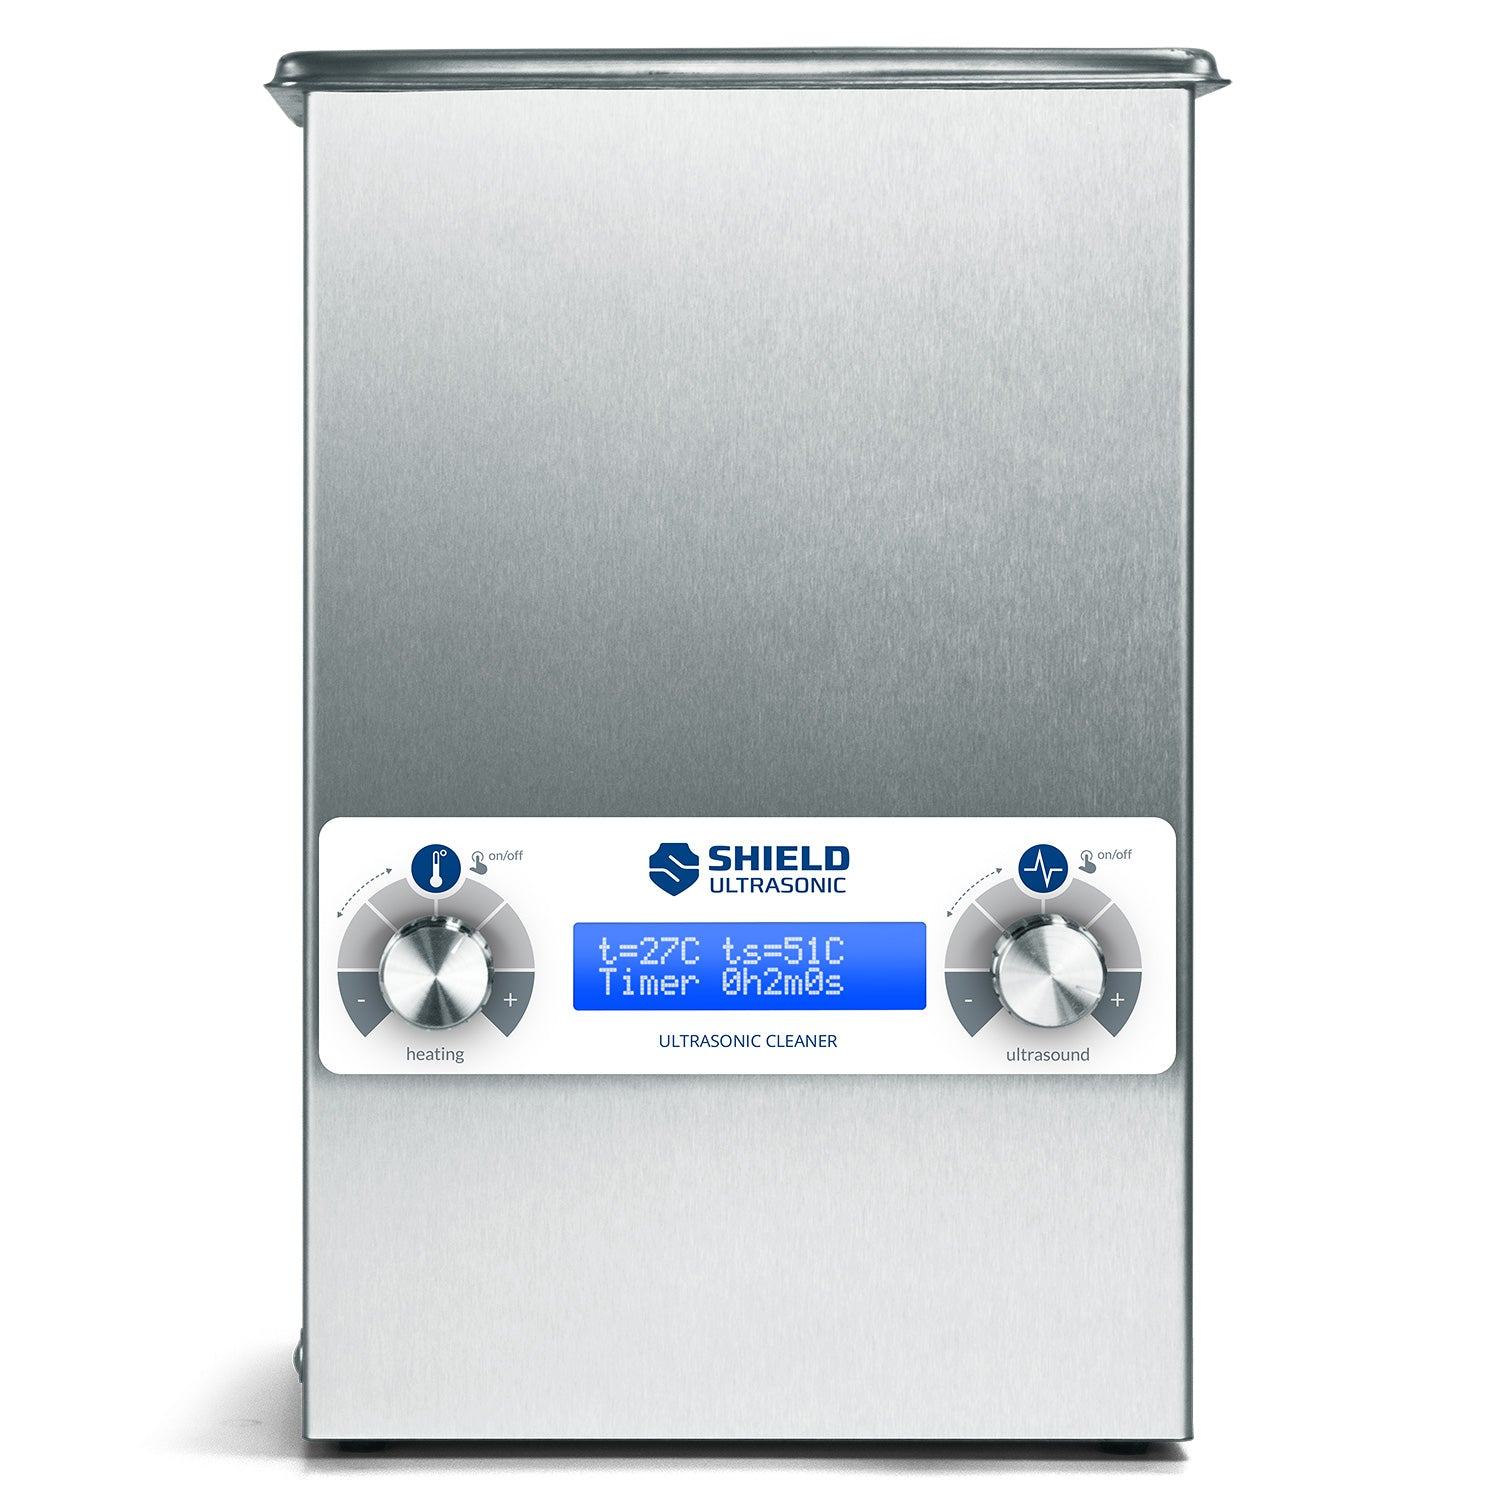 Shield Ultrasonic SC-035 Ultrasonic Cleaner 0.35gal / 1.3l | Stainless Steel, Heating, Digital, Laboratory Grade 25kHZ